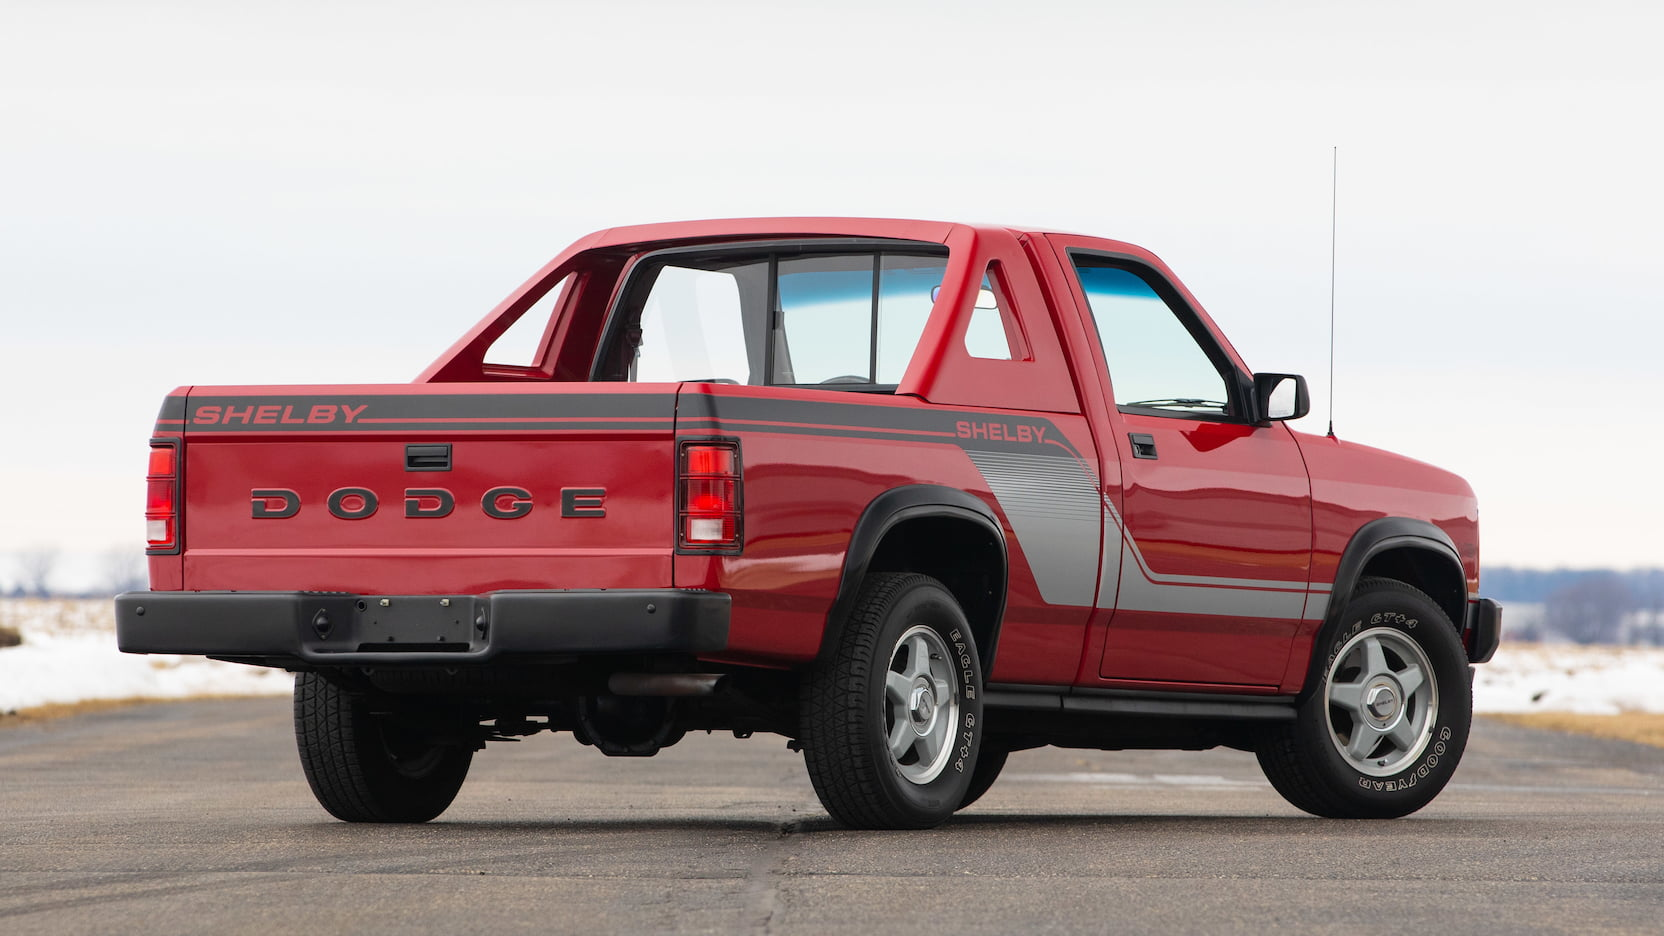 Dodge-Shelby-Dakota-1989-4